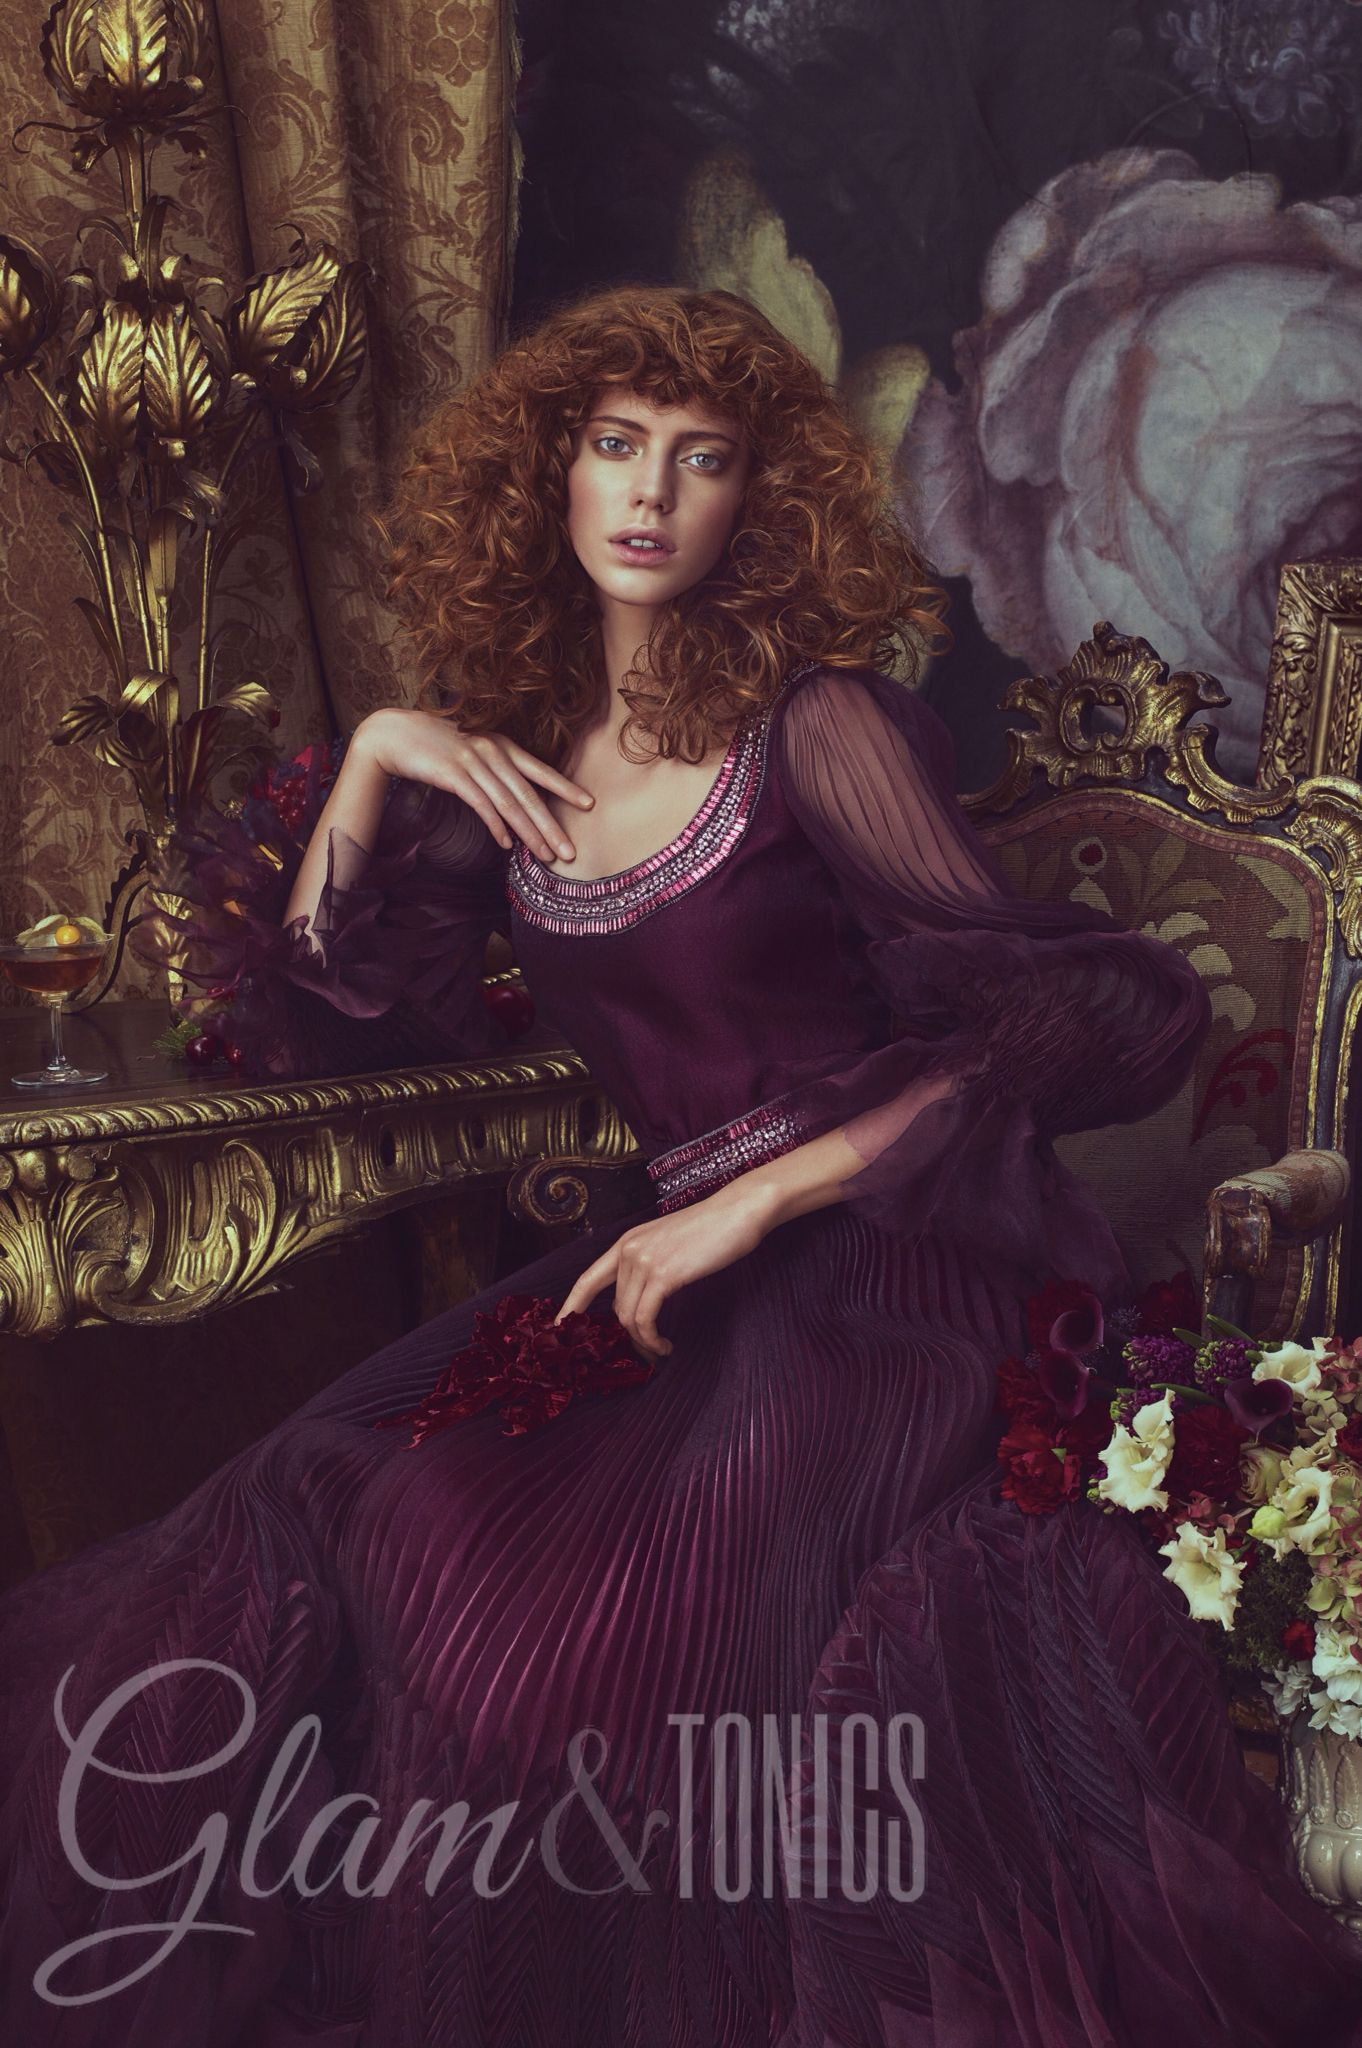 AVEDA Sublime Spirit Autumn 2015 Fall Collection. Inspired